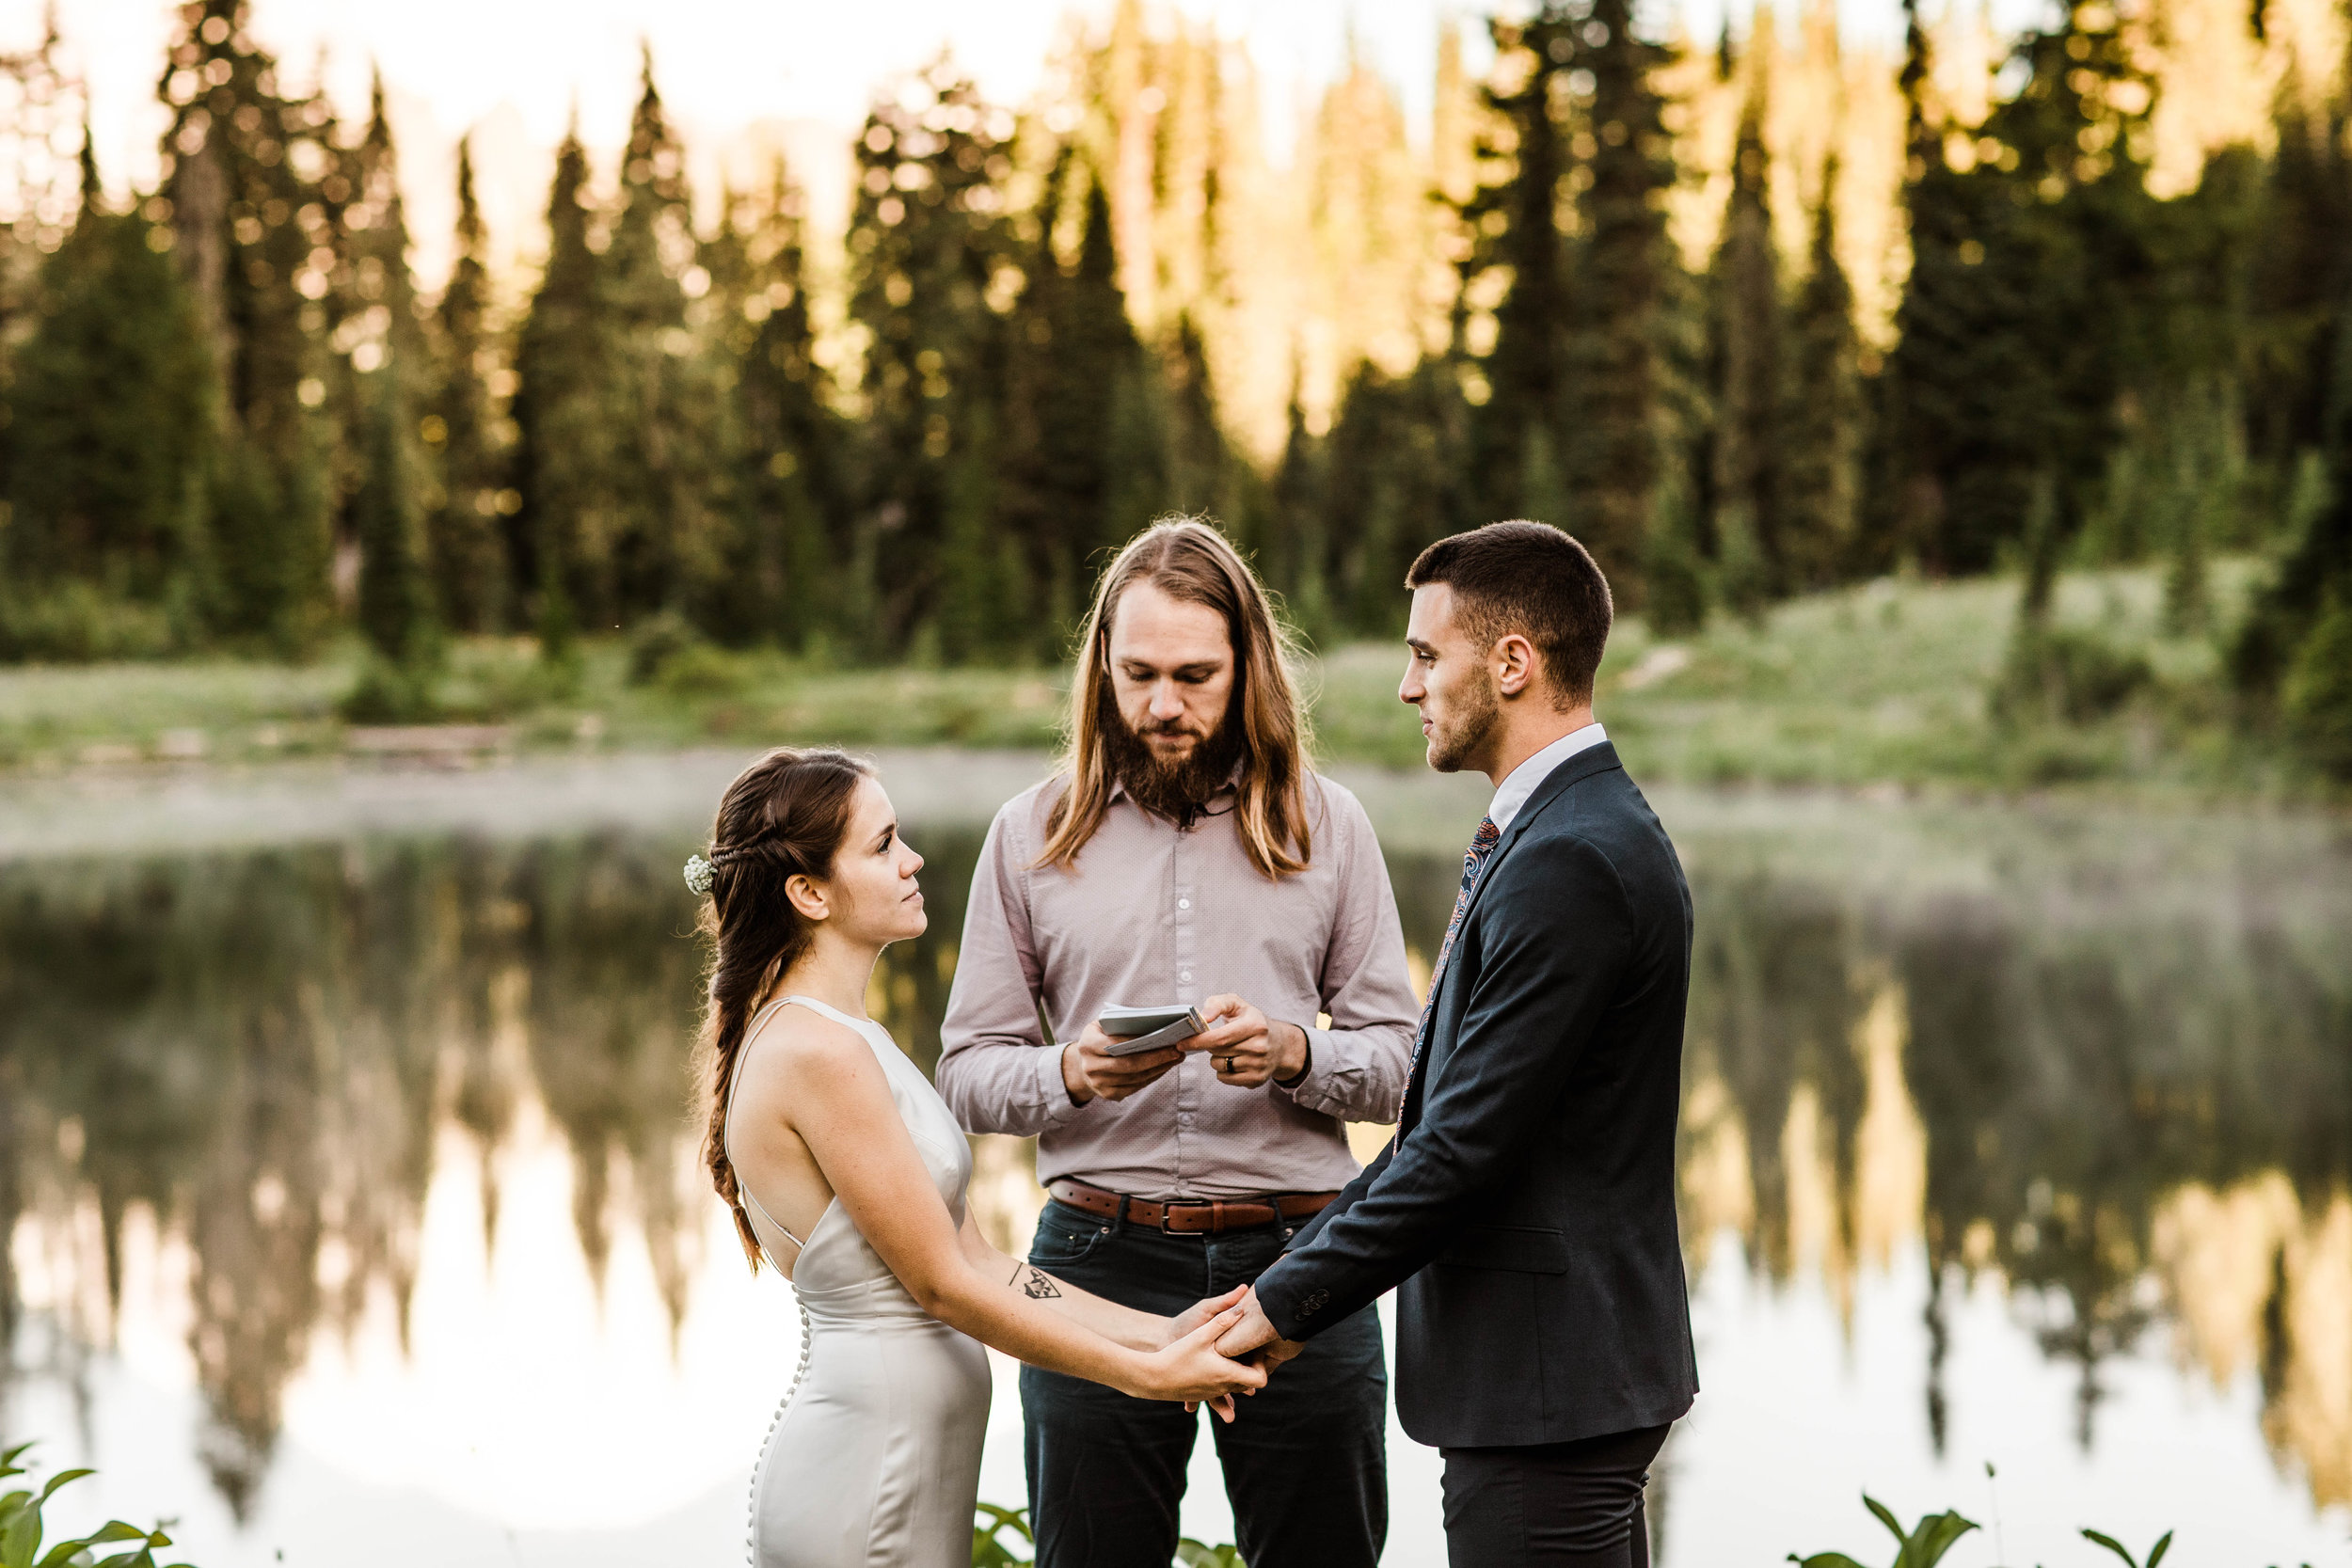 elopement ceremony in Mount Rainier | national park elopement photographers in Washington state